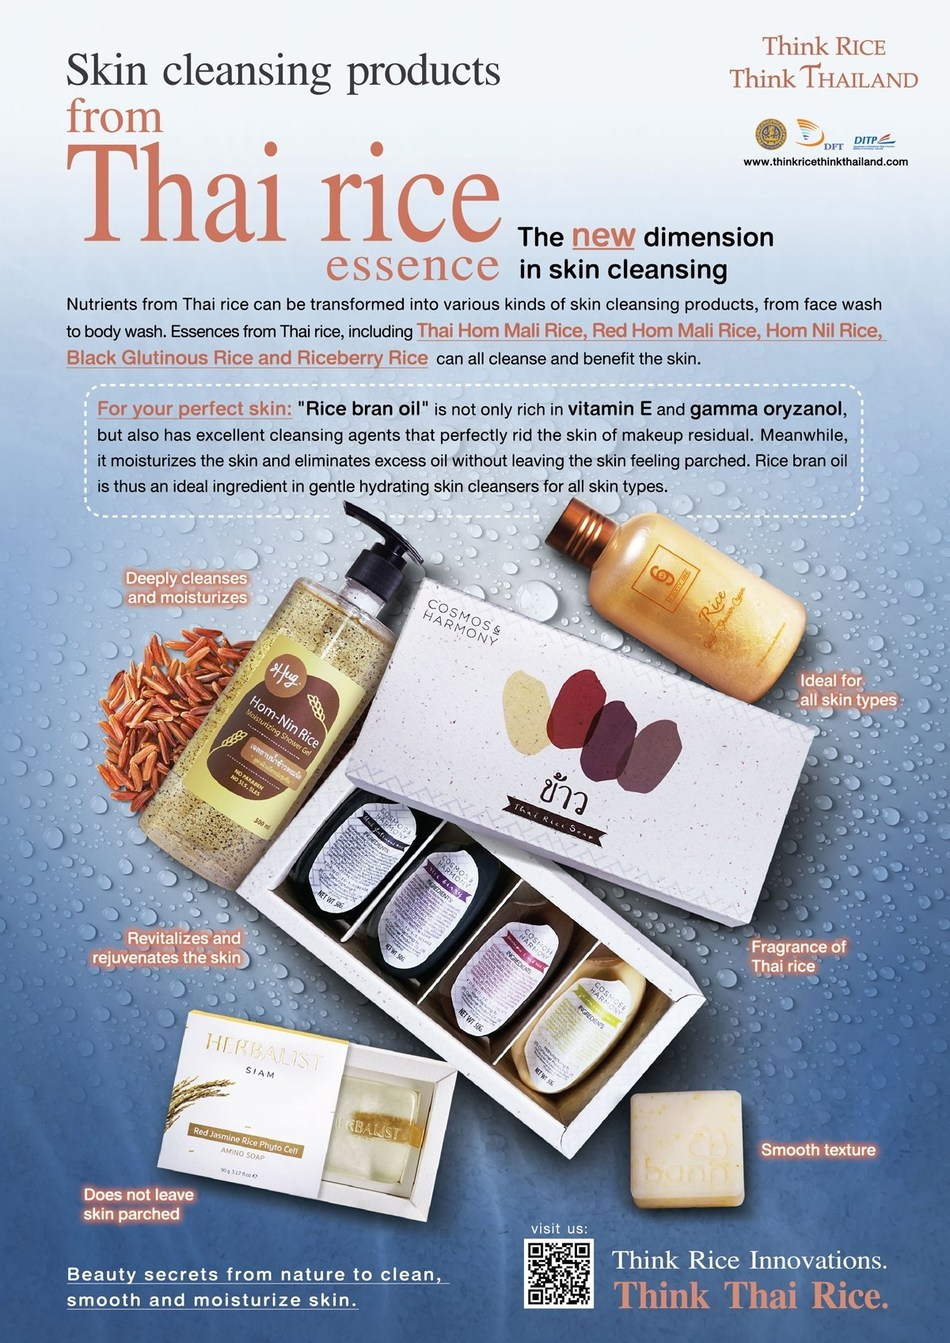 Skin Cleansing Products from Thai Rice Essence, the New Dimension in Skin Cleansing